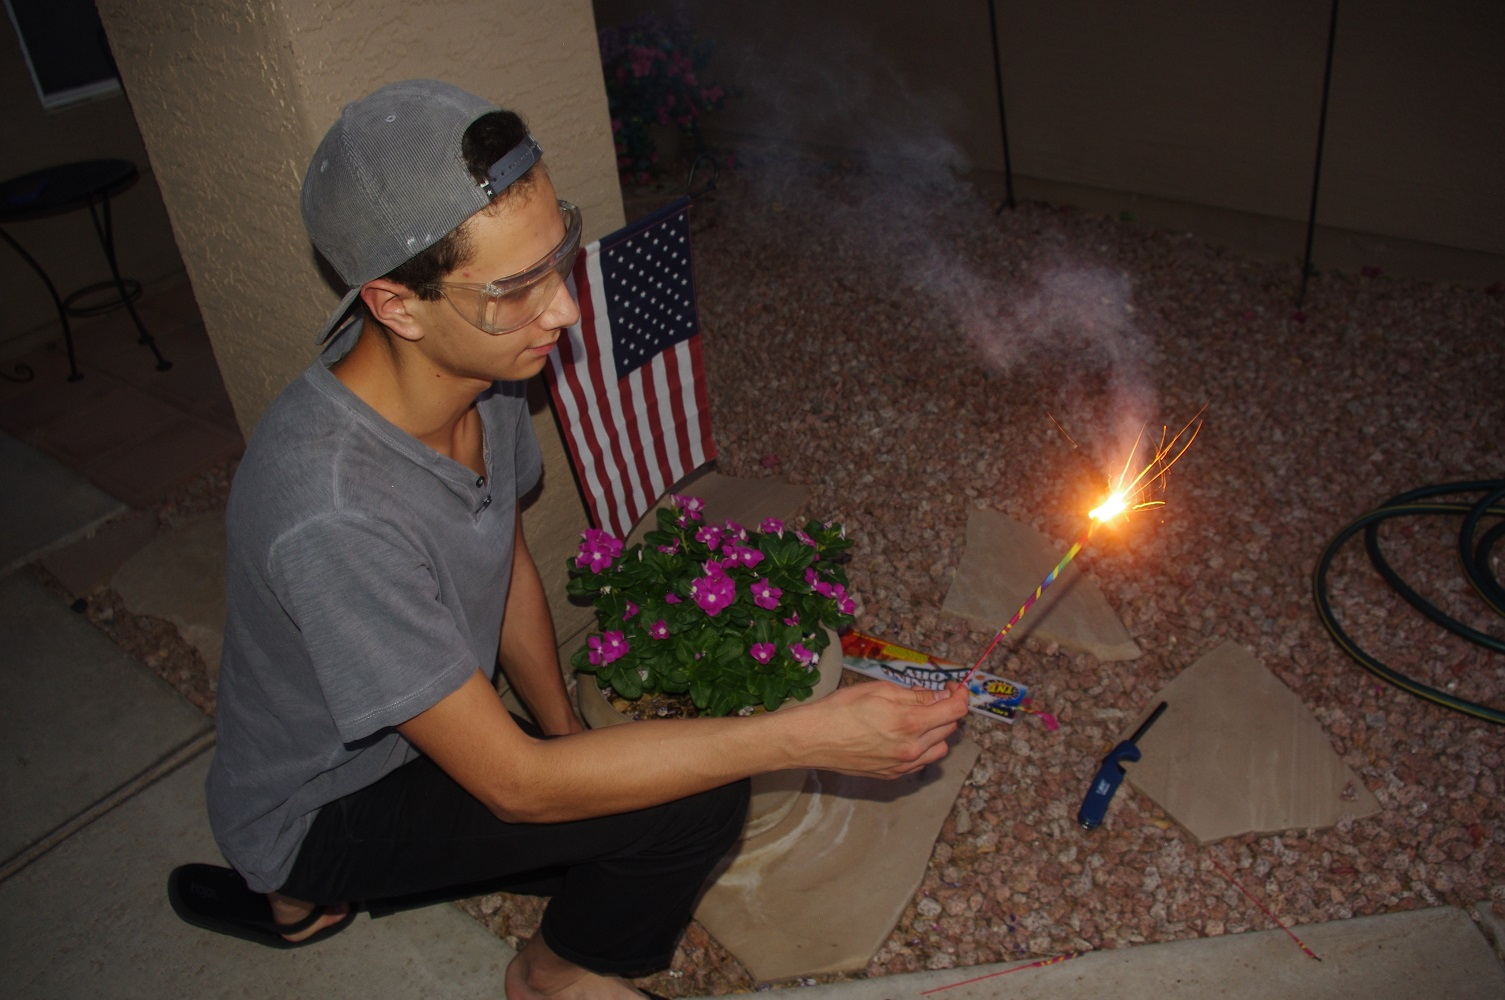 Safety goggles vital to protect against fireworks injury